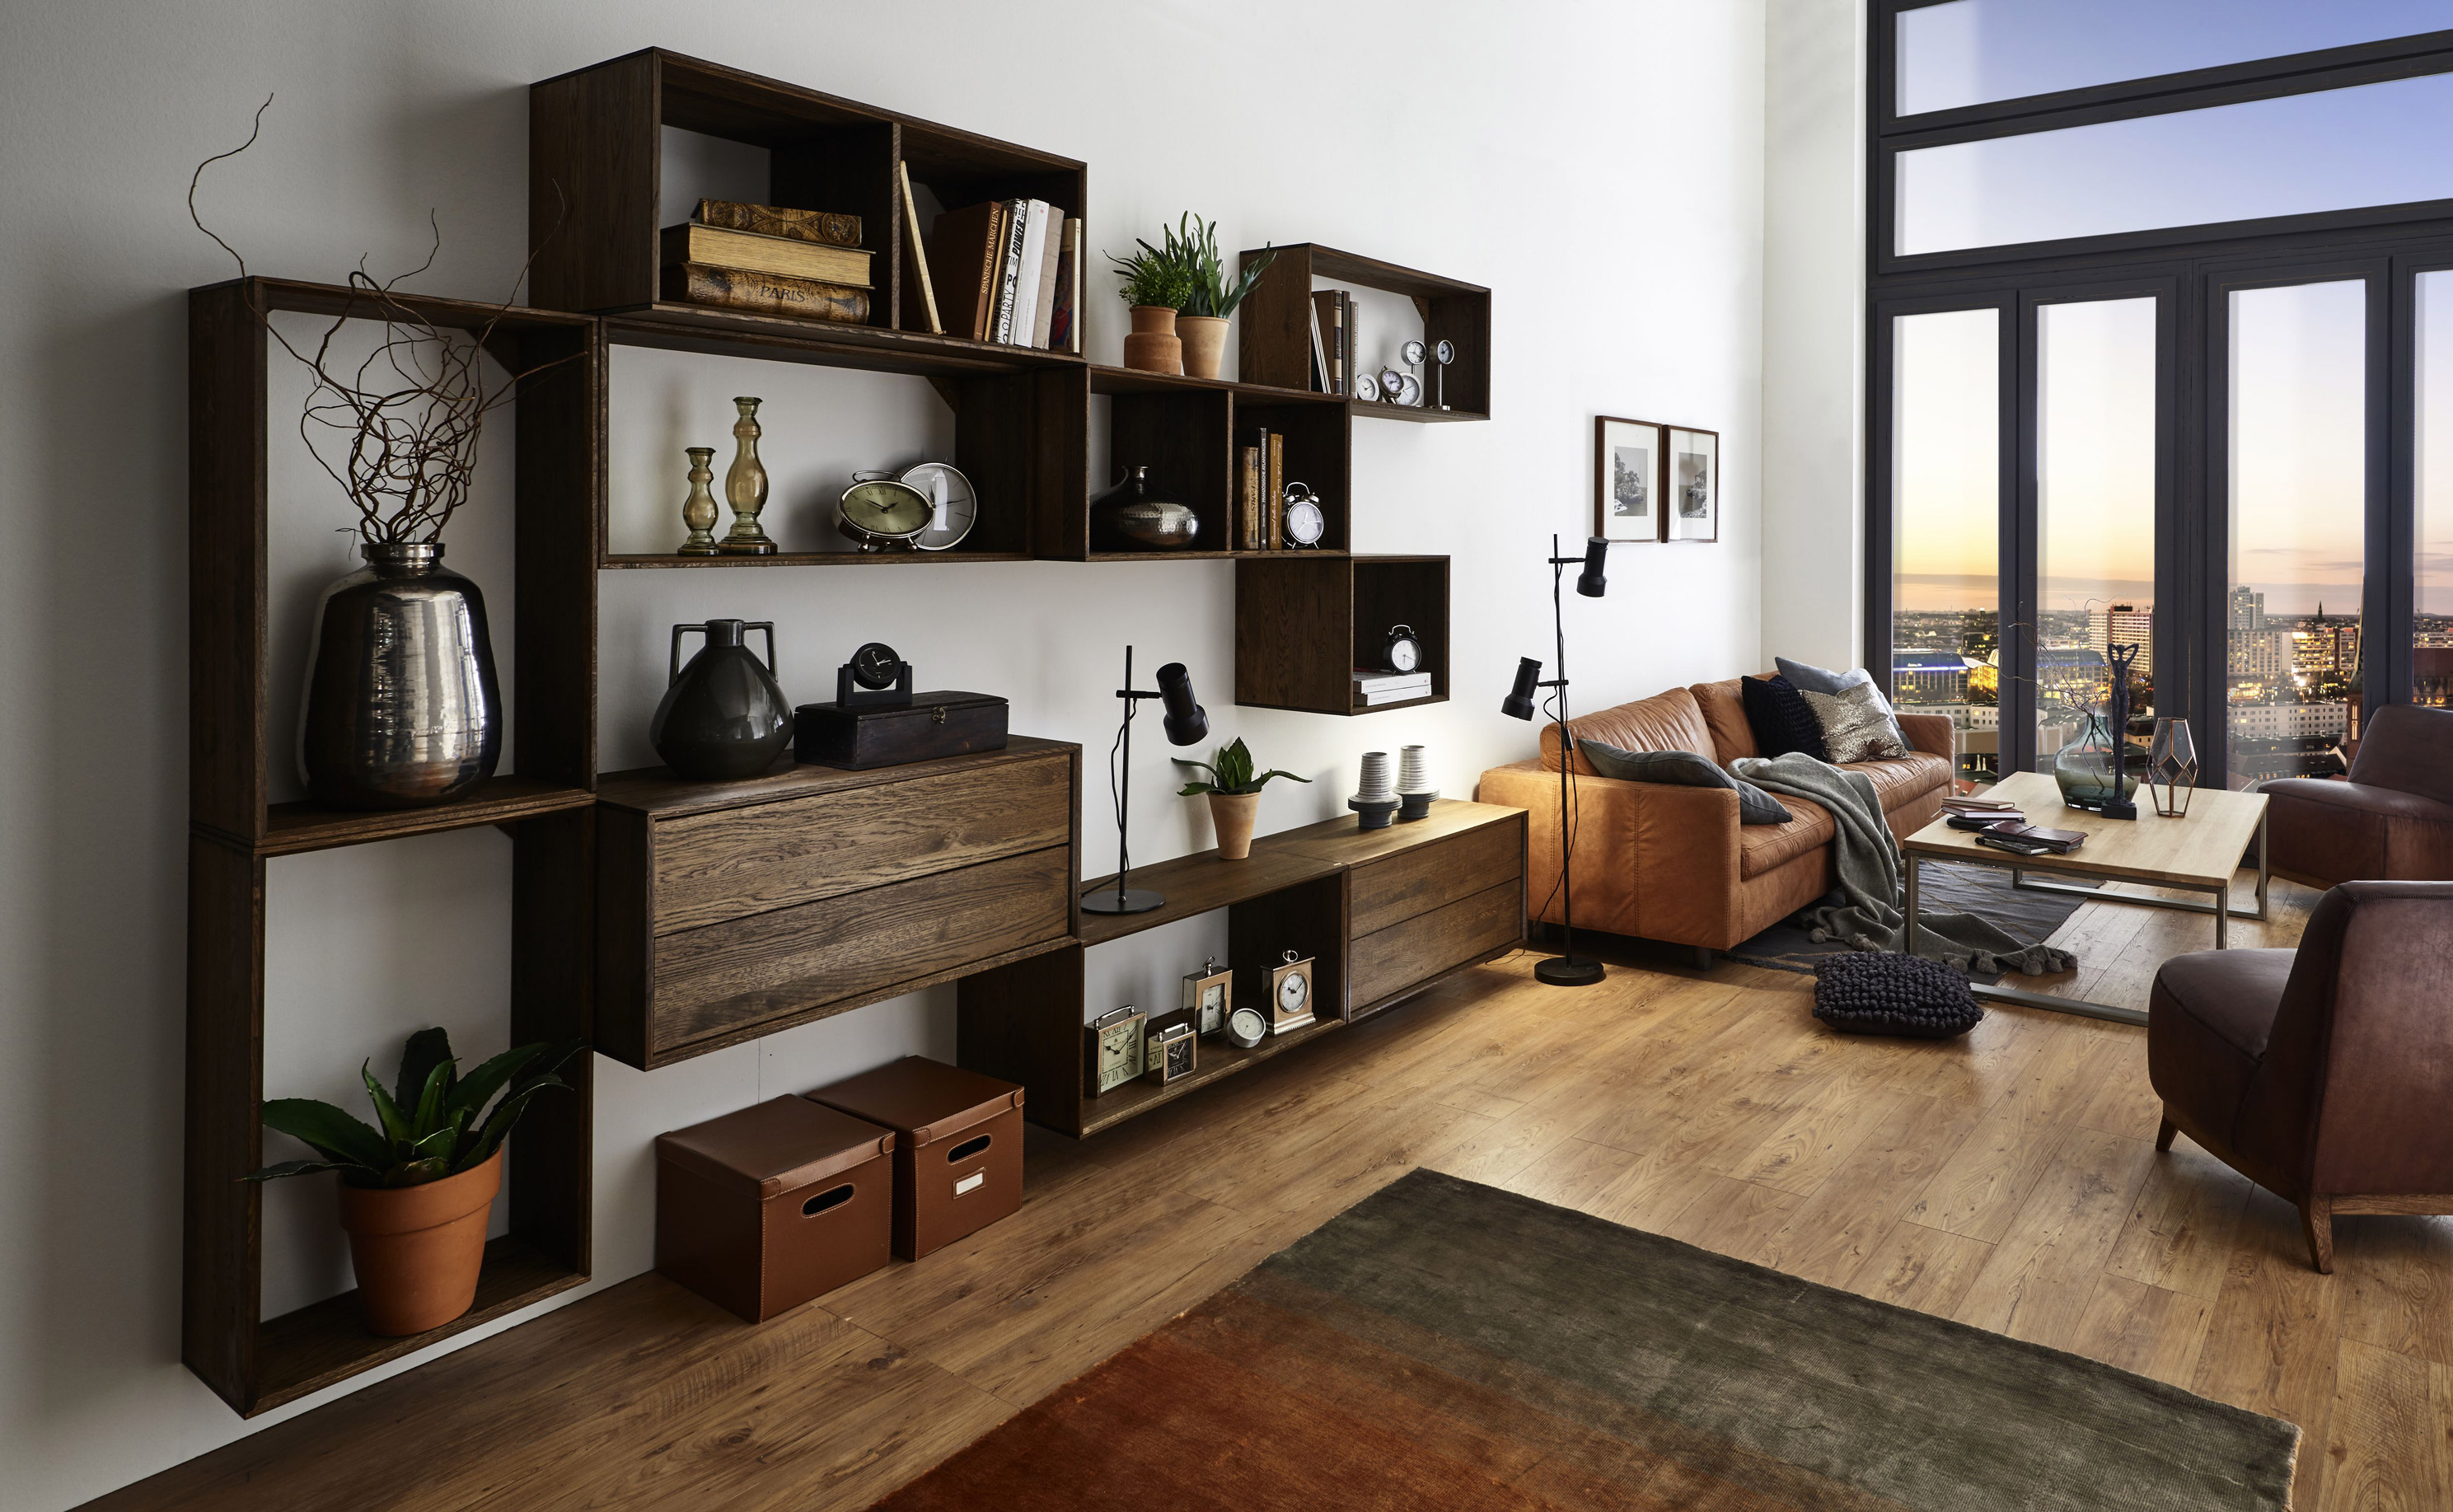 tischlerei edelmann wir bringen holz in form 3370 ybbs donau. Black Bedroom Furniture Sets. Home Design Ideas